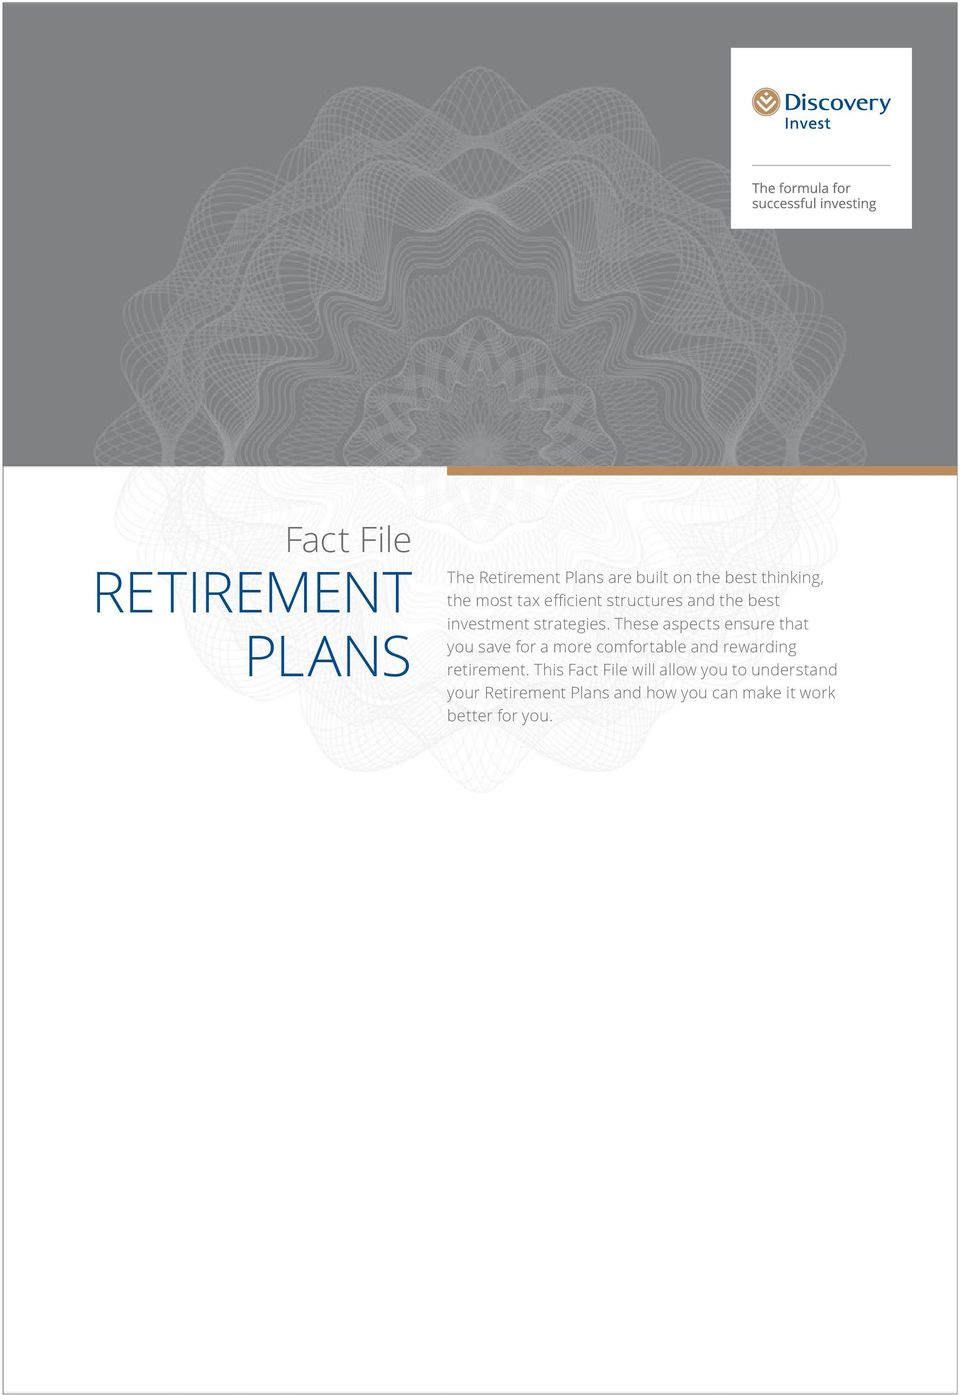 These aspects ensure that you save for a more comfortable and rewarding retirement.